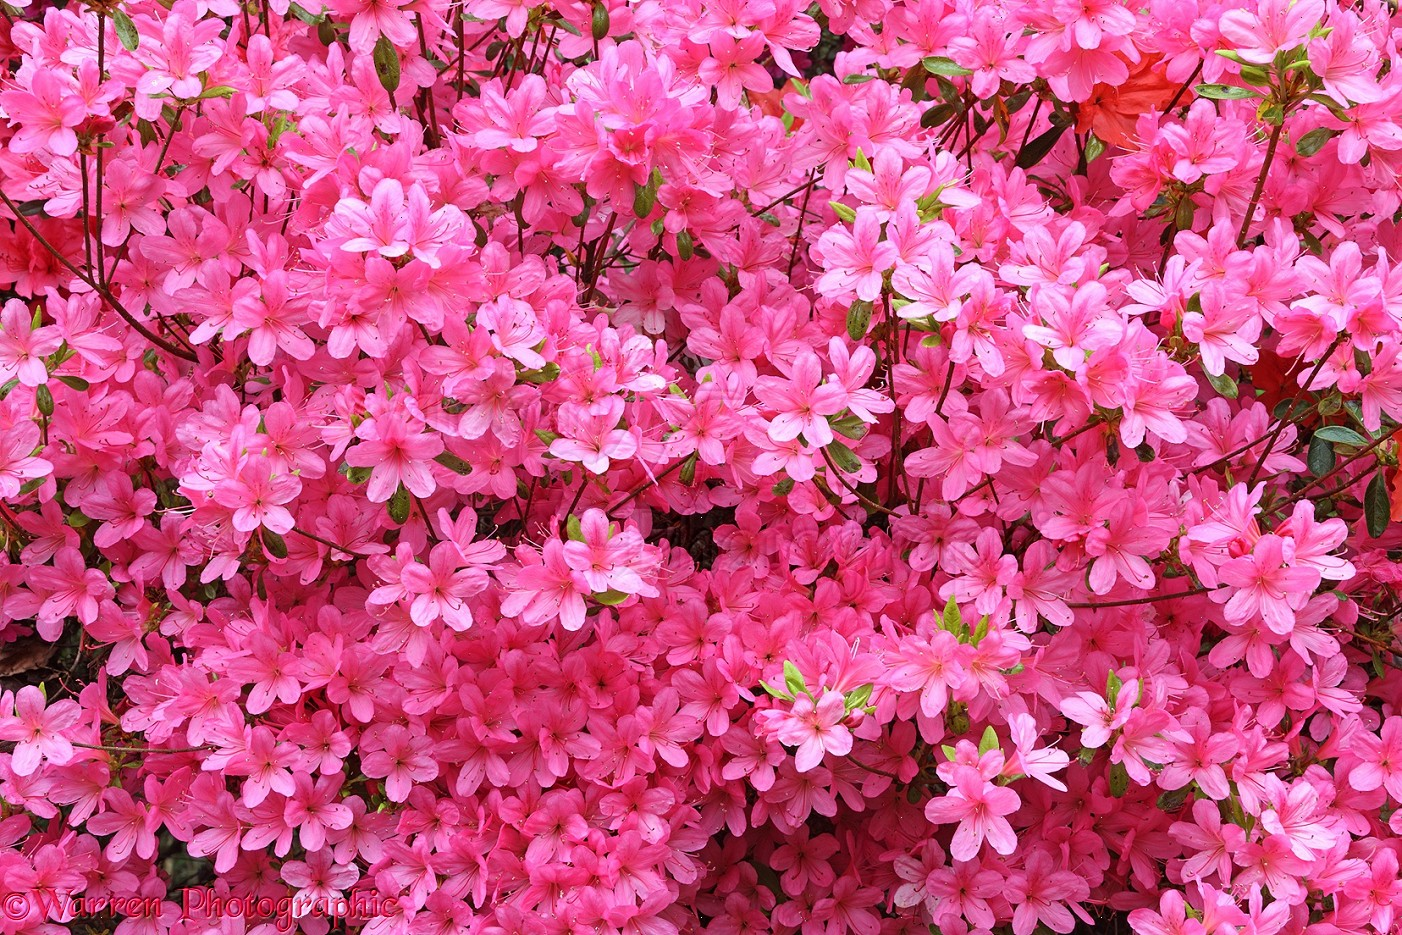 Pink azalea flowers photo wp27988 pink azalea flowers mightylinksfo